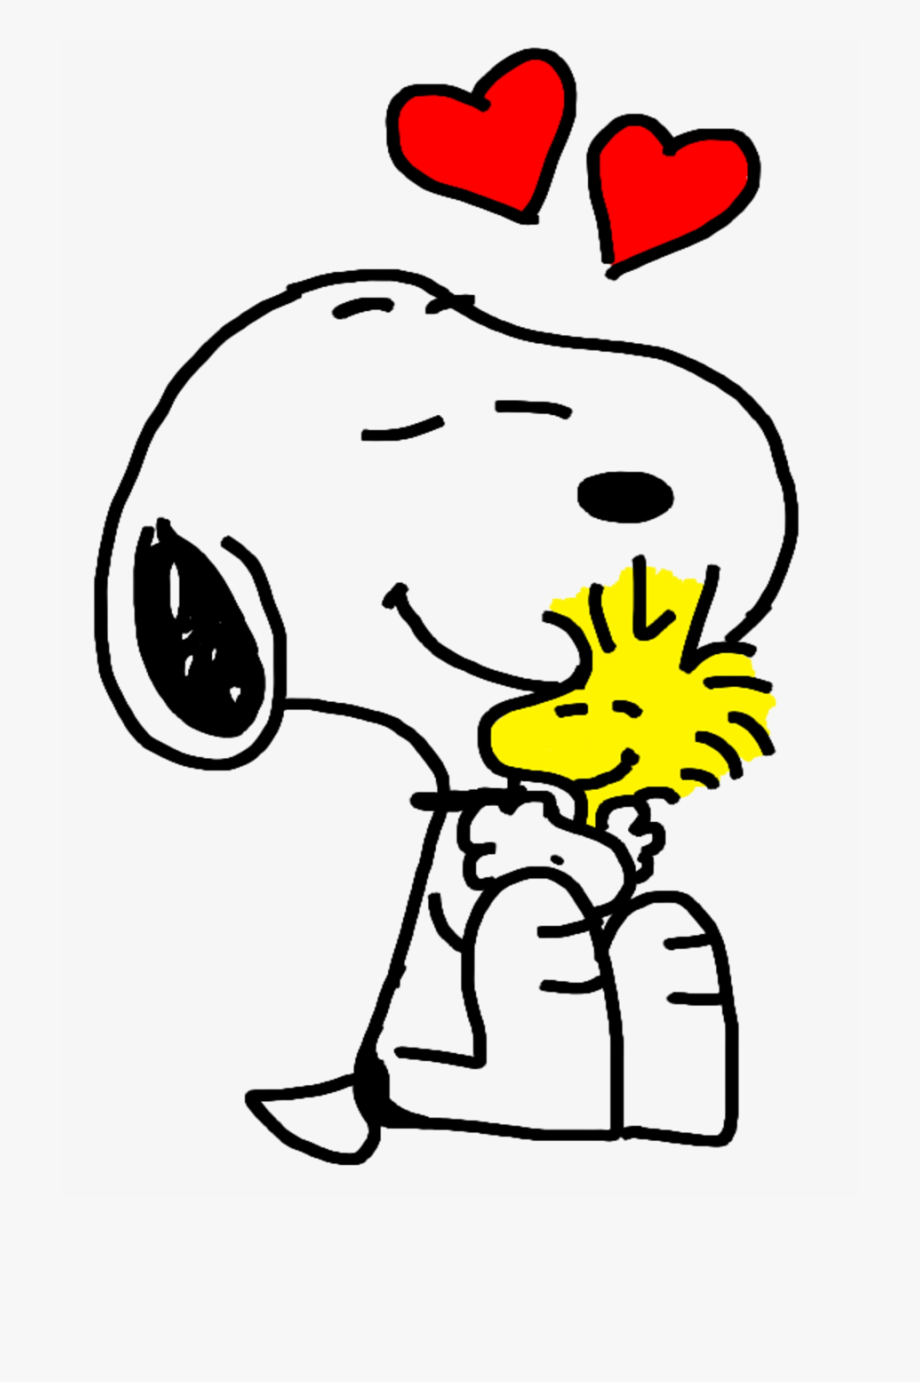 Download Snoopy Clipart Snoopy Woodstock Clip Art.